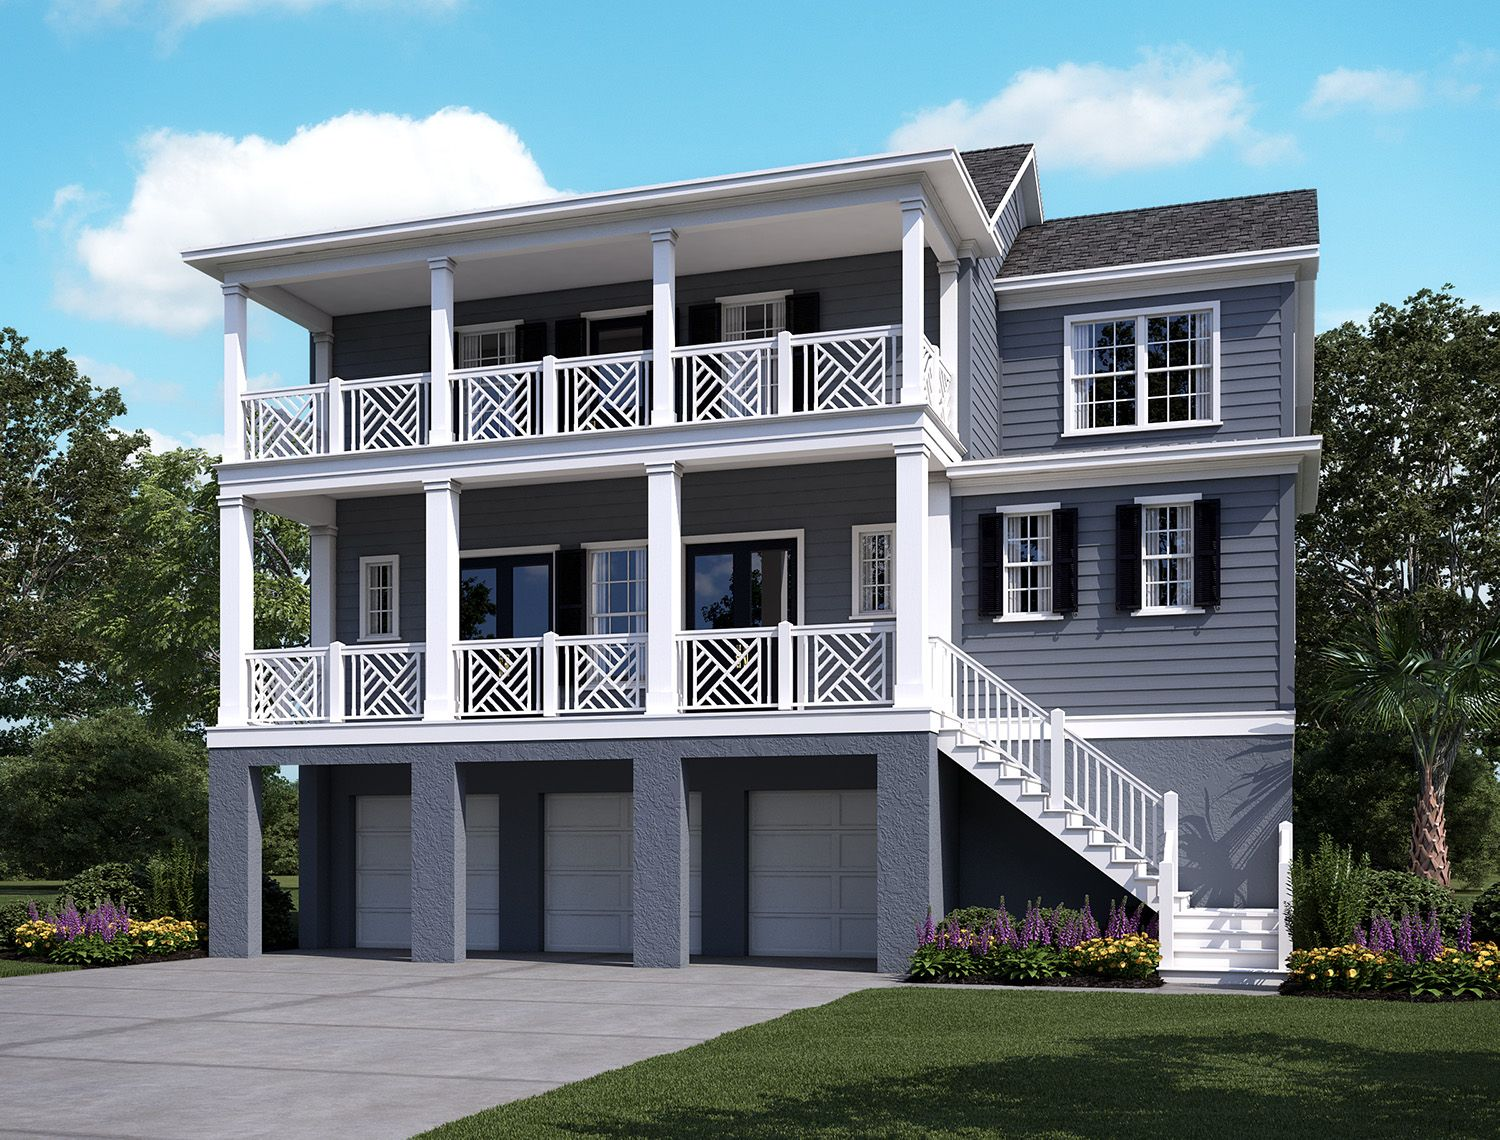 Exterior:Stratton by the Sound - Copahee Elevation Image 1